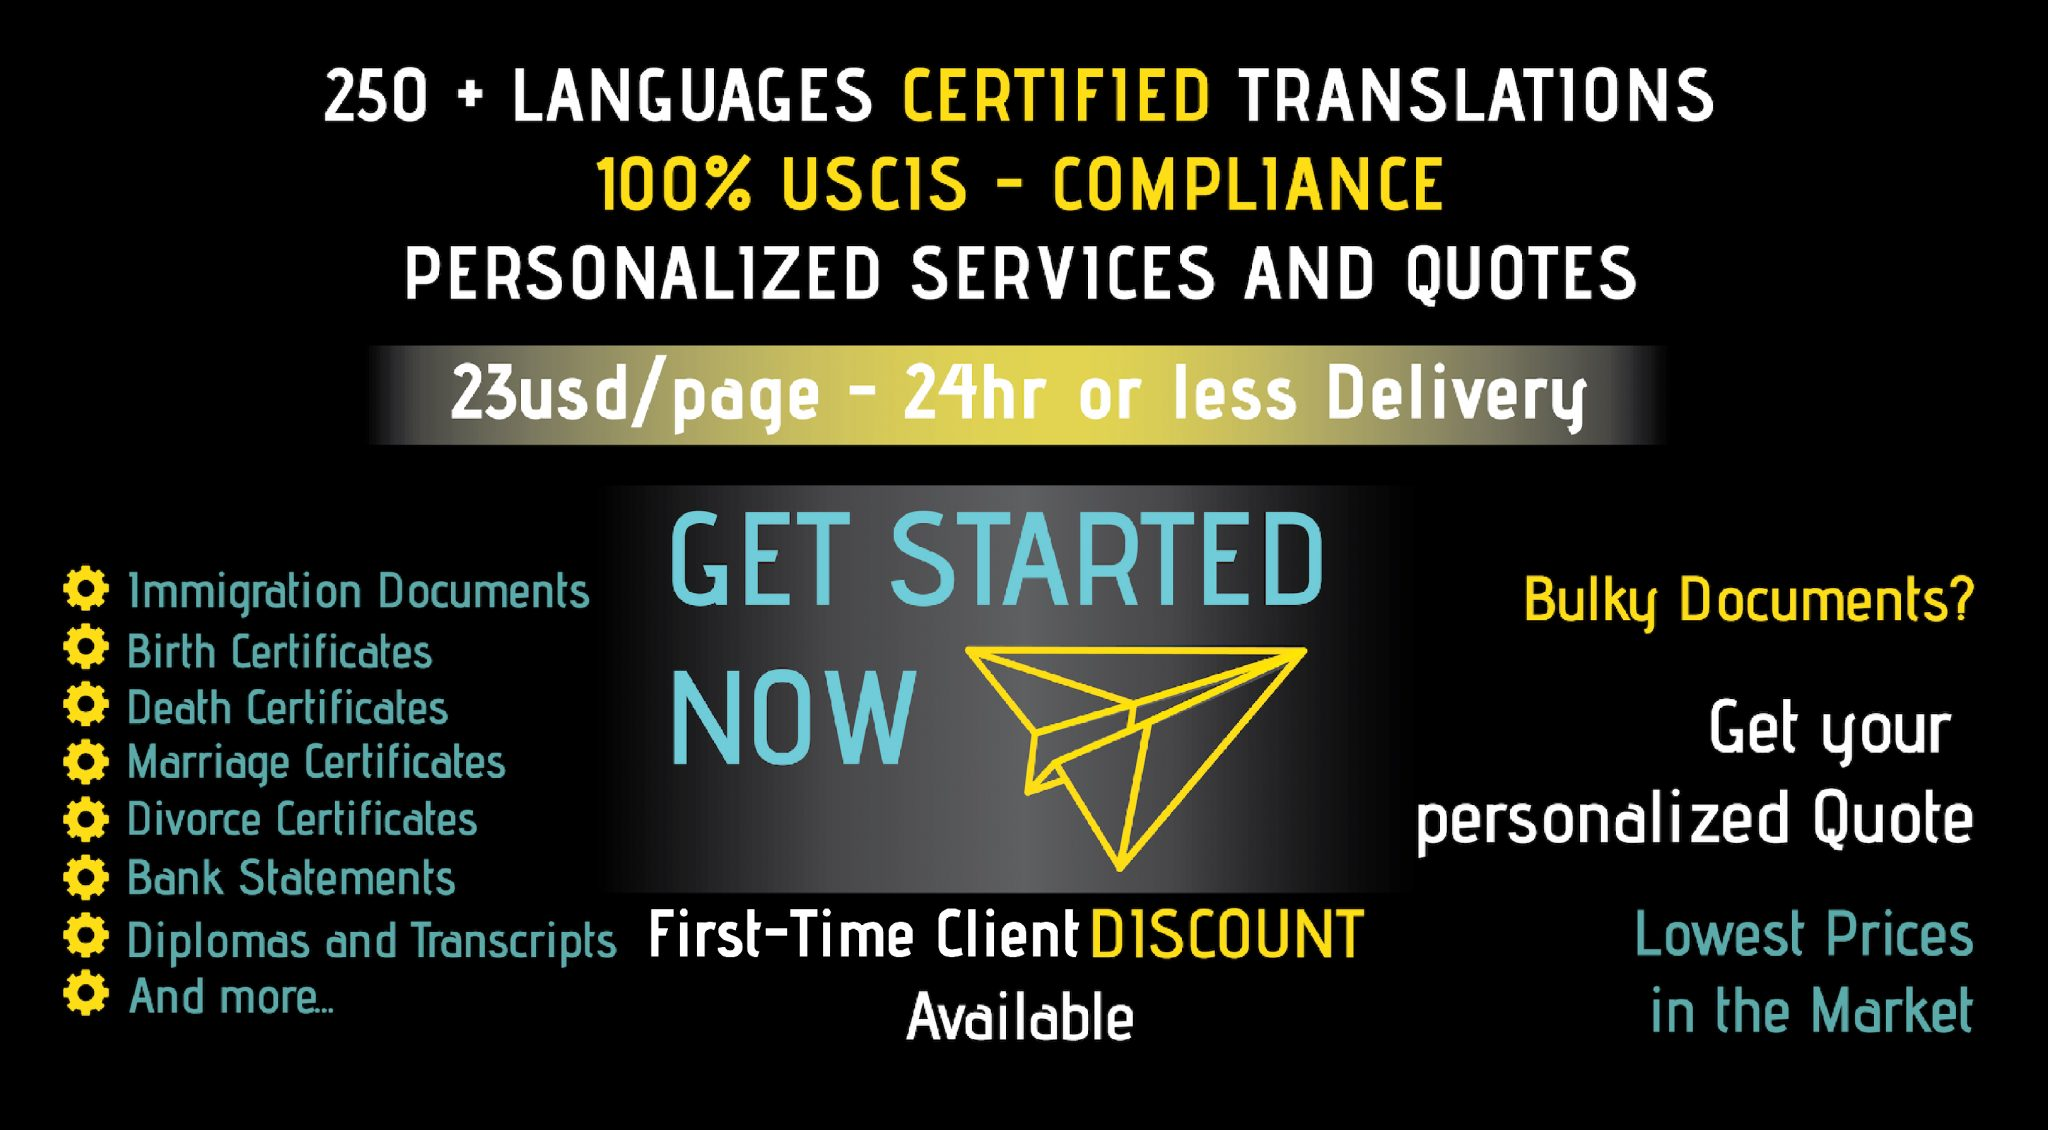 We offer  250 languages for certified translations, including fast and reliable service with discounts available.